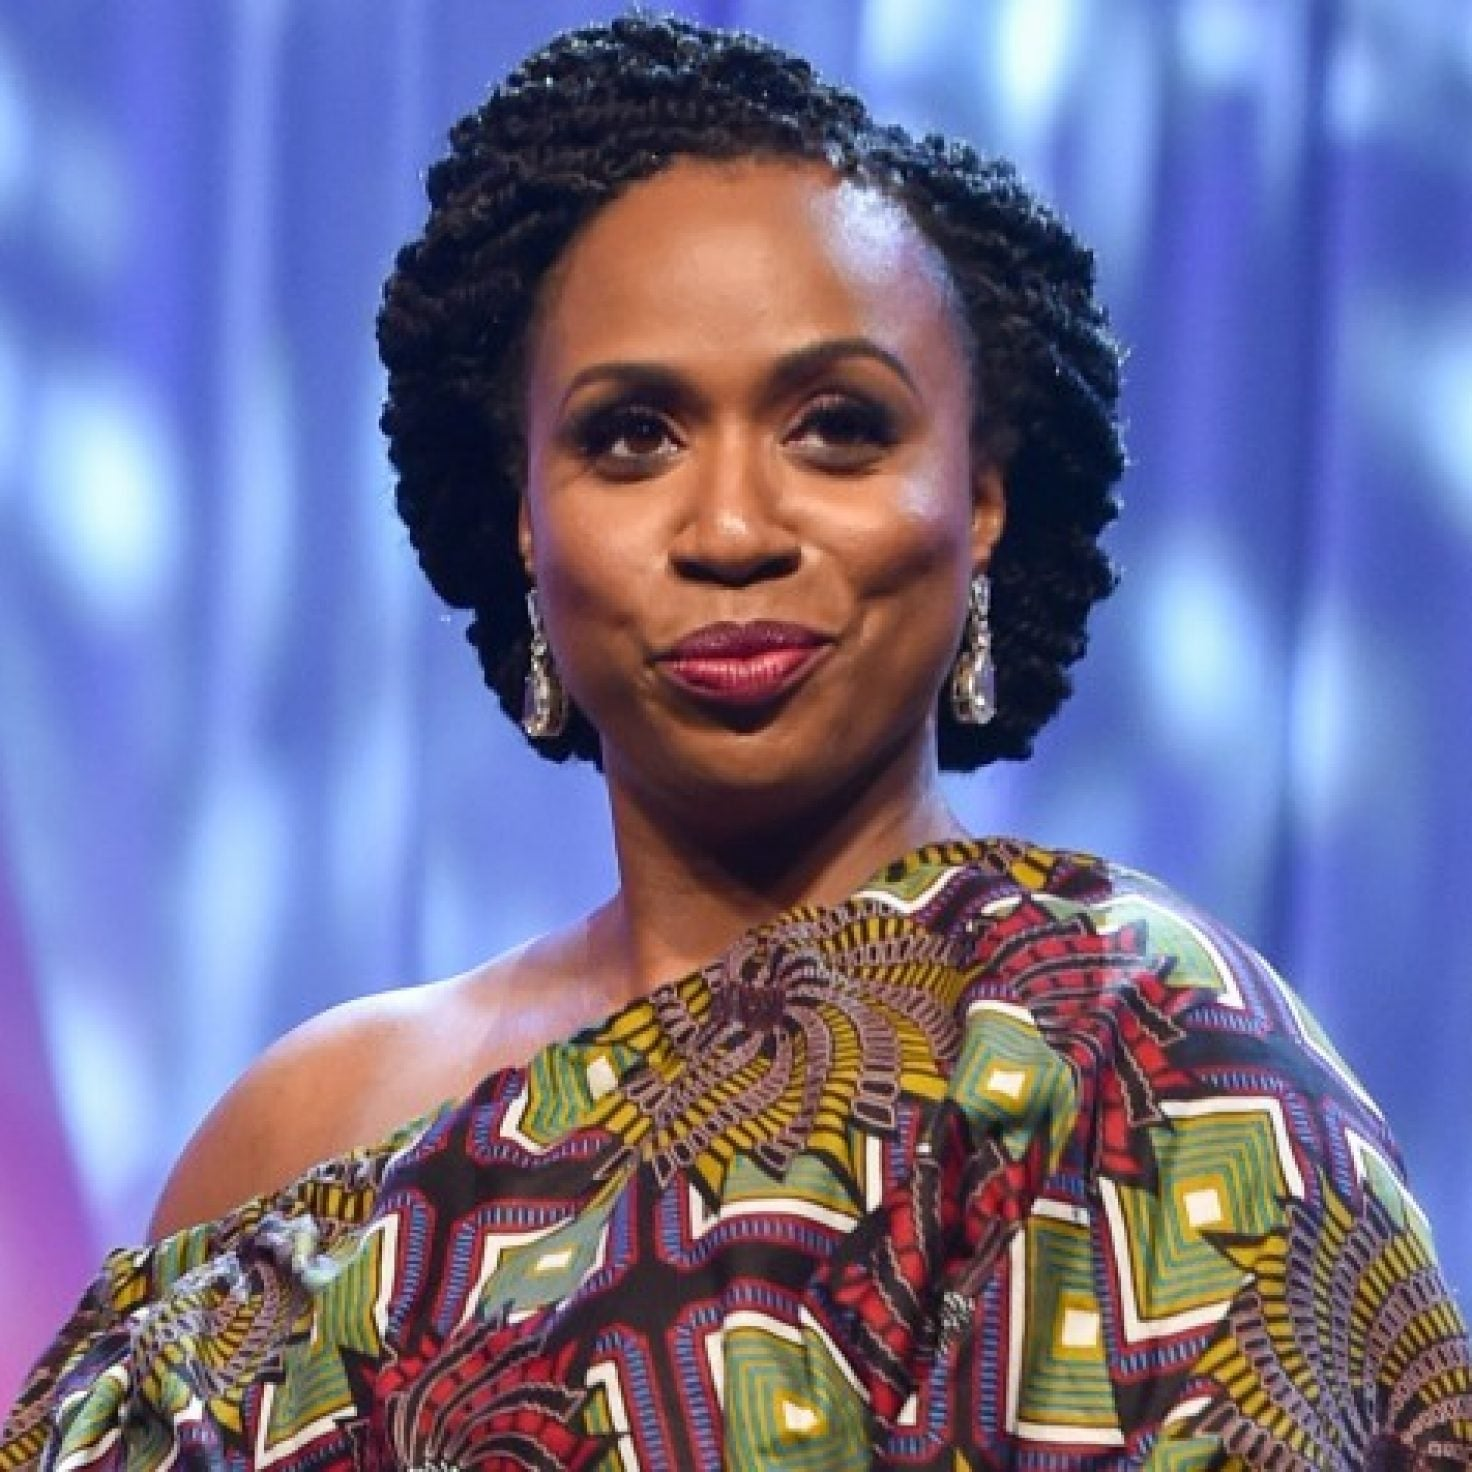 Ayanna Pressley Addresses The House In A Beautiful Bald Head For The First Time